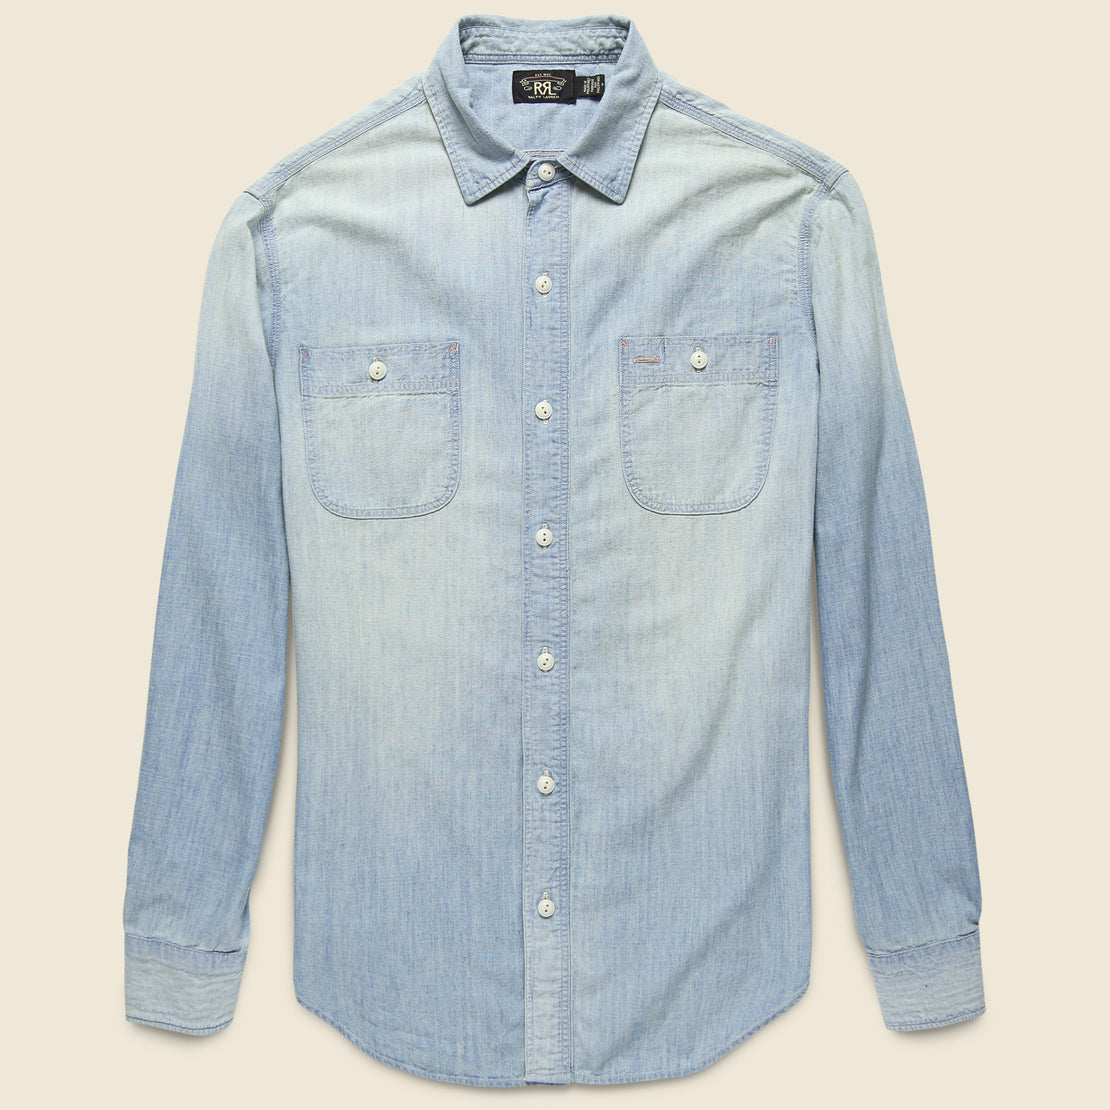 RRL Farrell Chambray Workshirt - Medium Wash